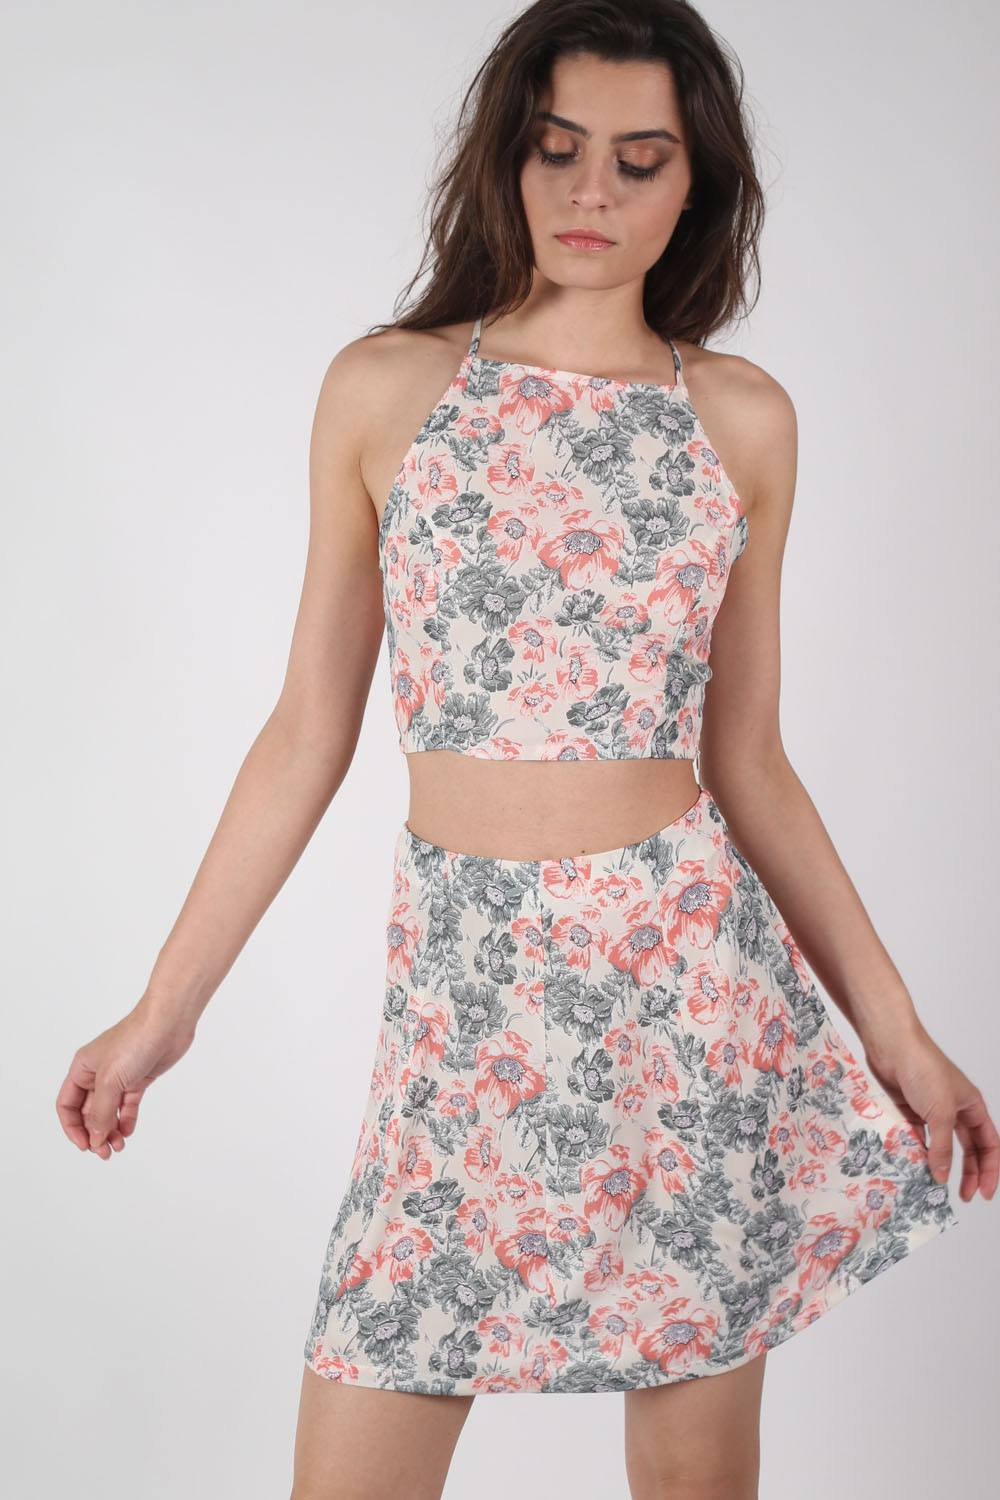 Floral Print Crop Top in Pale Pink MODEL FRONT